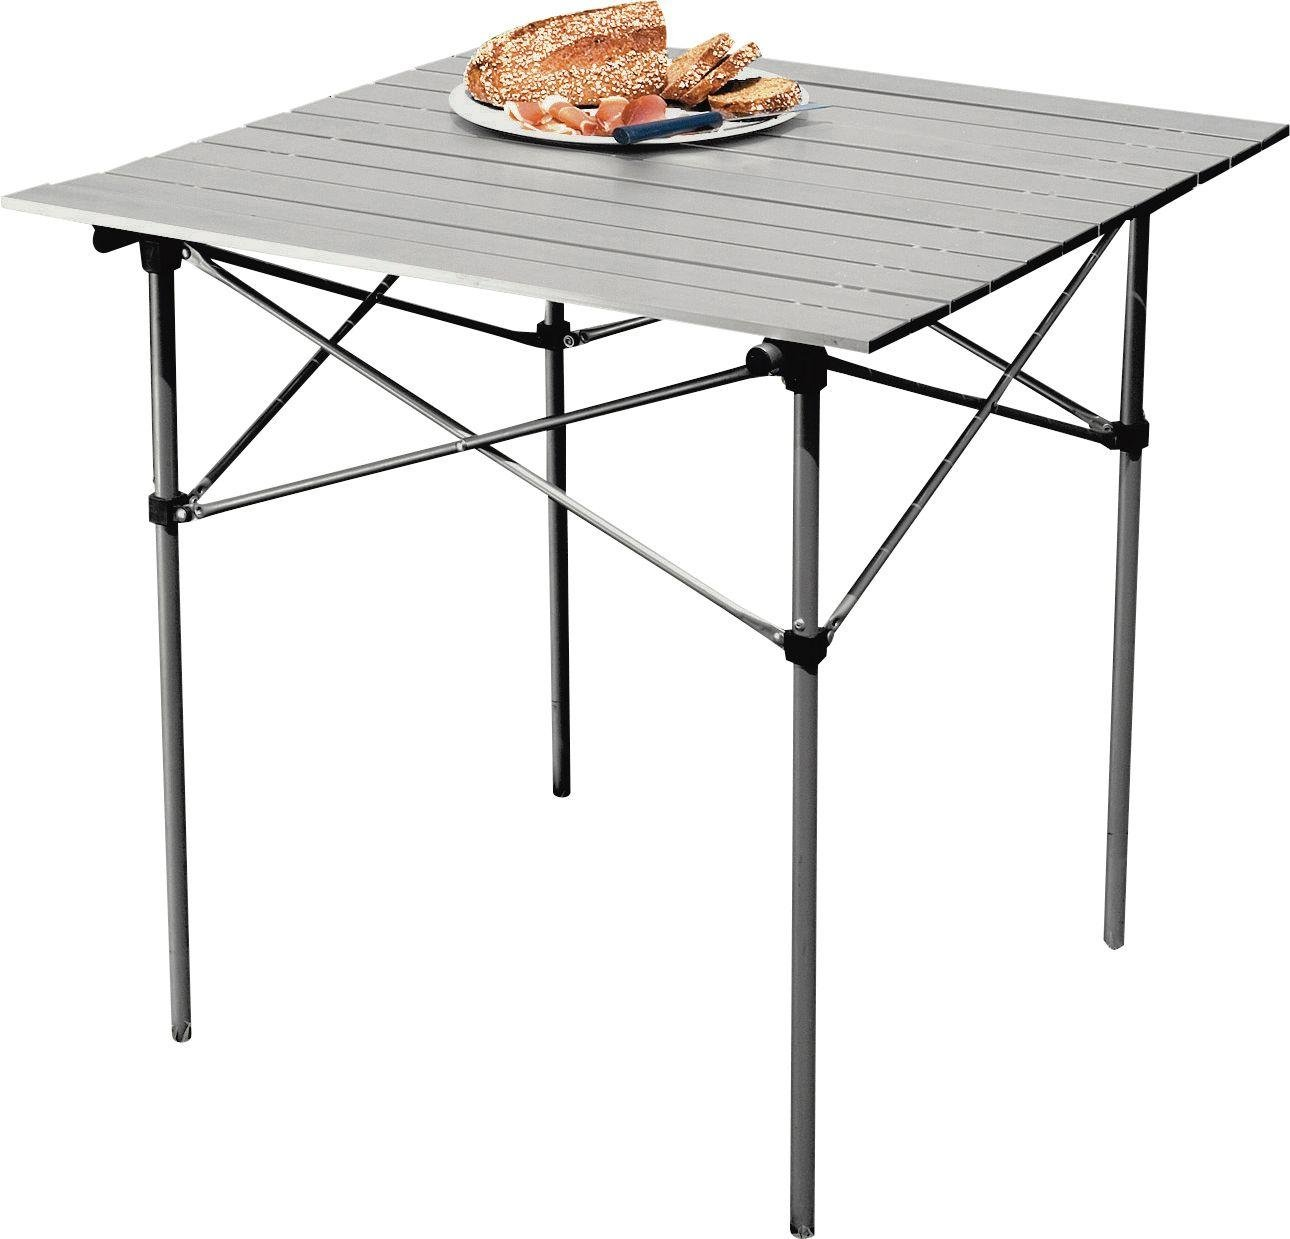 aluminium folding camping table with slatted top927/8211 FUMVQFU